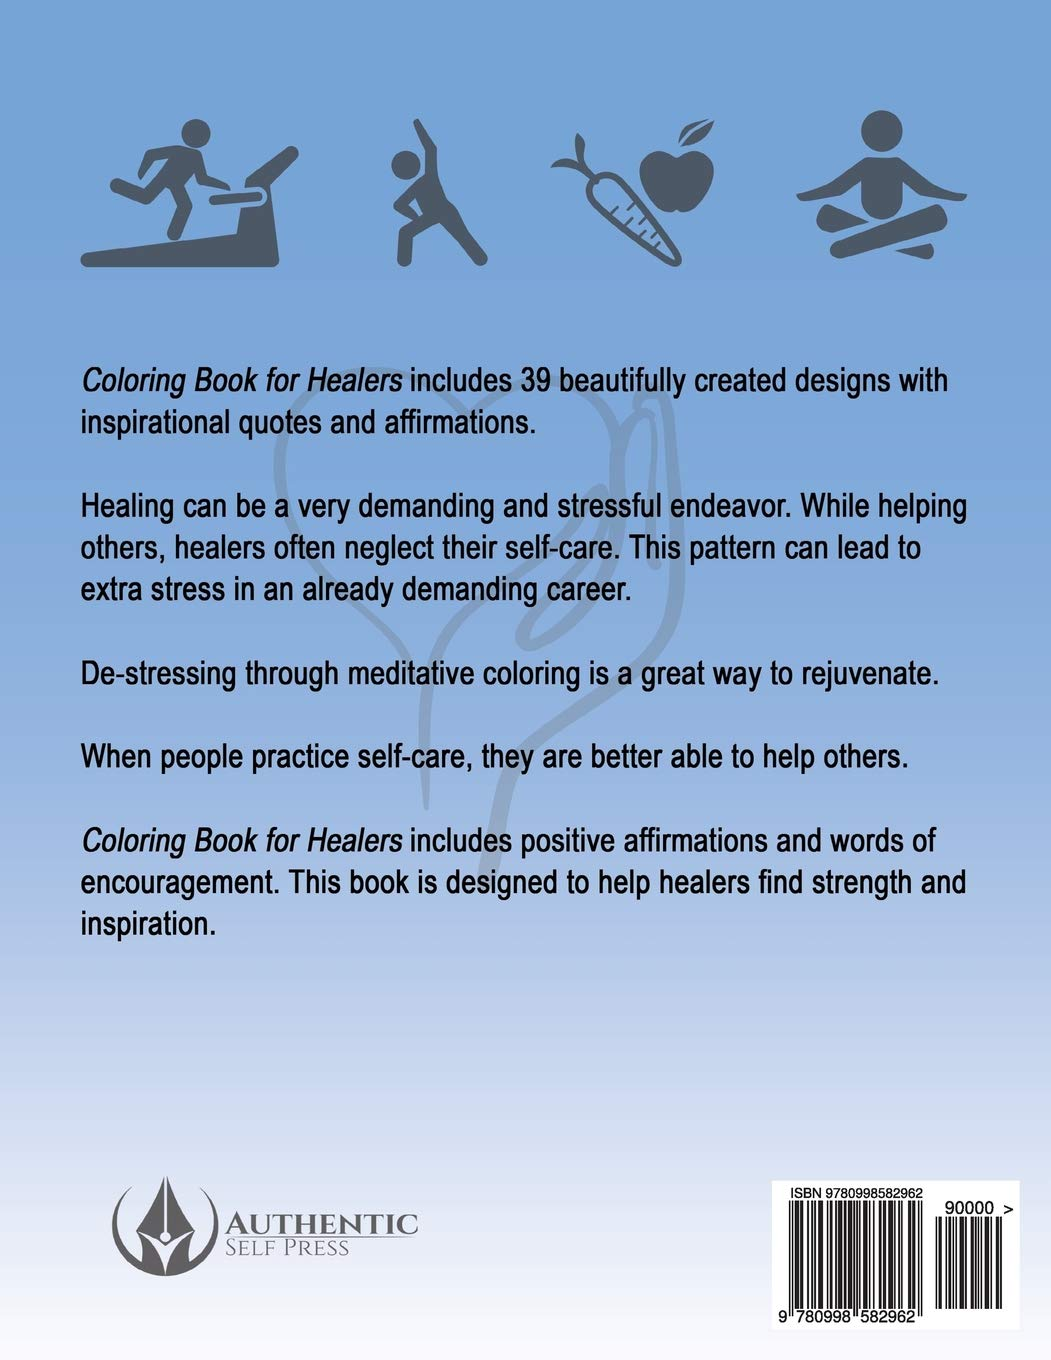 Amazon.com: Coloring Book for Healers: Stress Relieving Designs ...